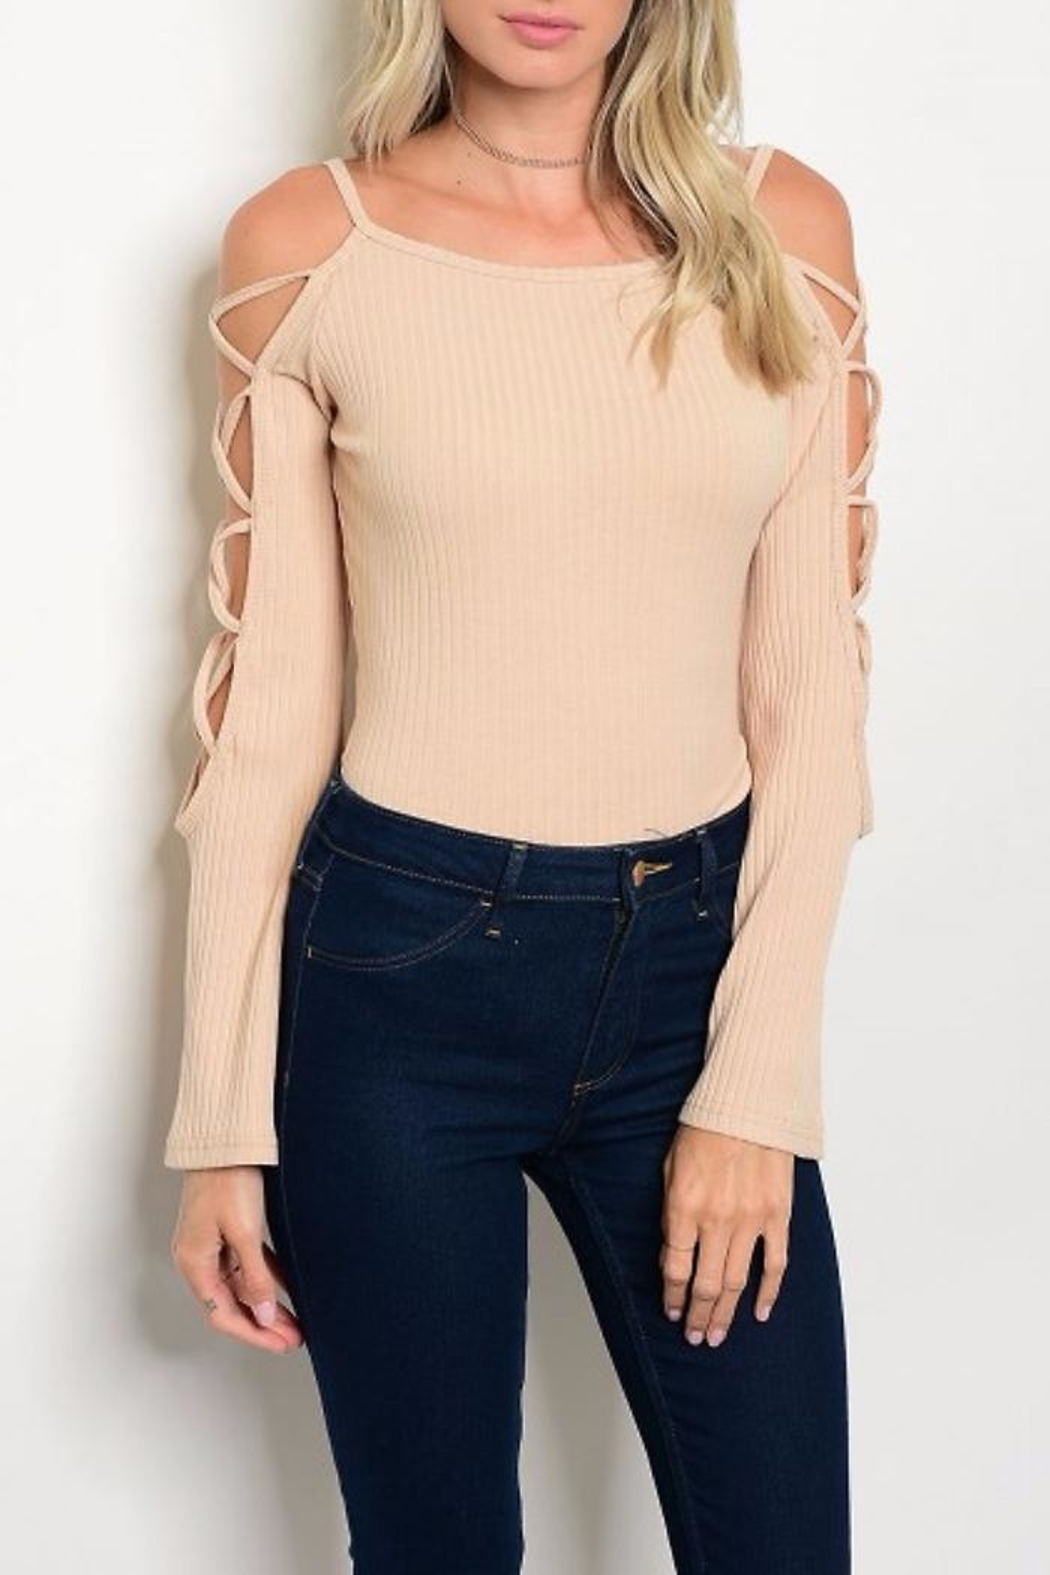 People Outfitter Open Shoulder Bodysuit - Main Image